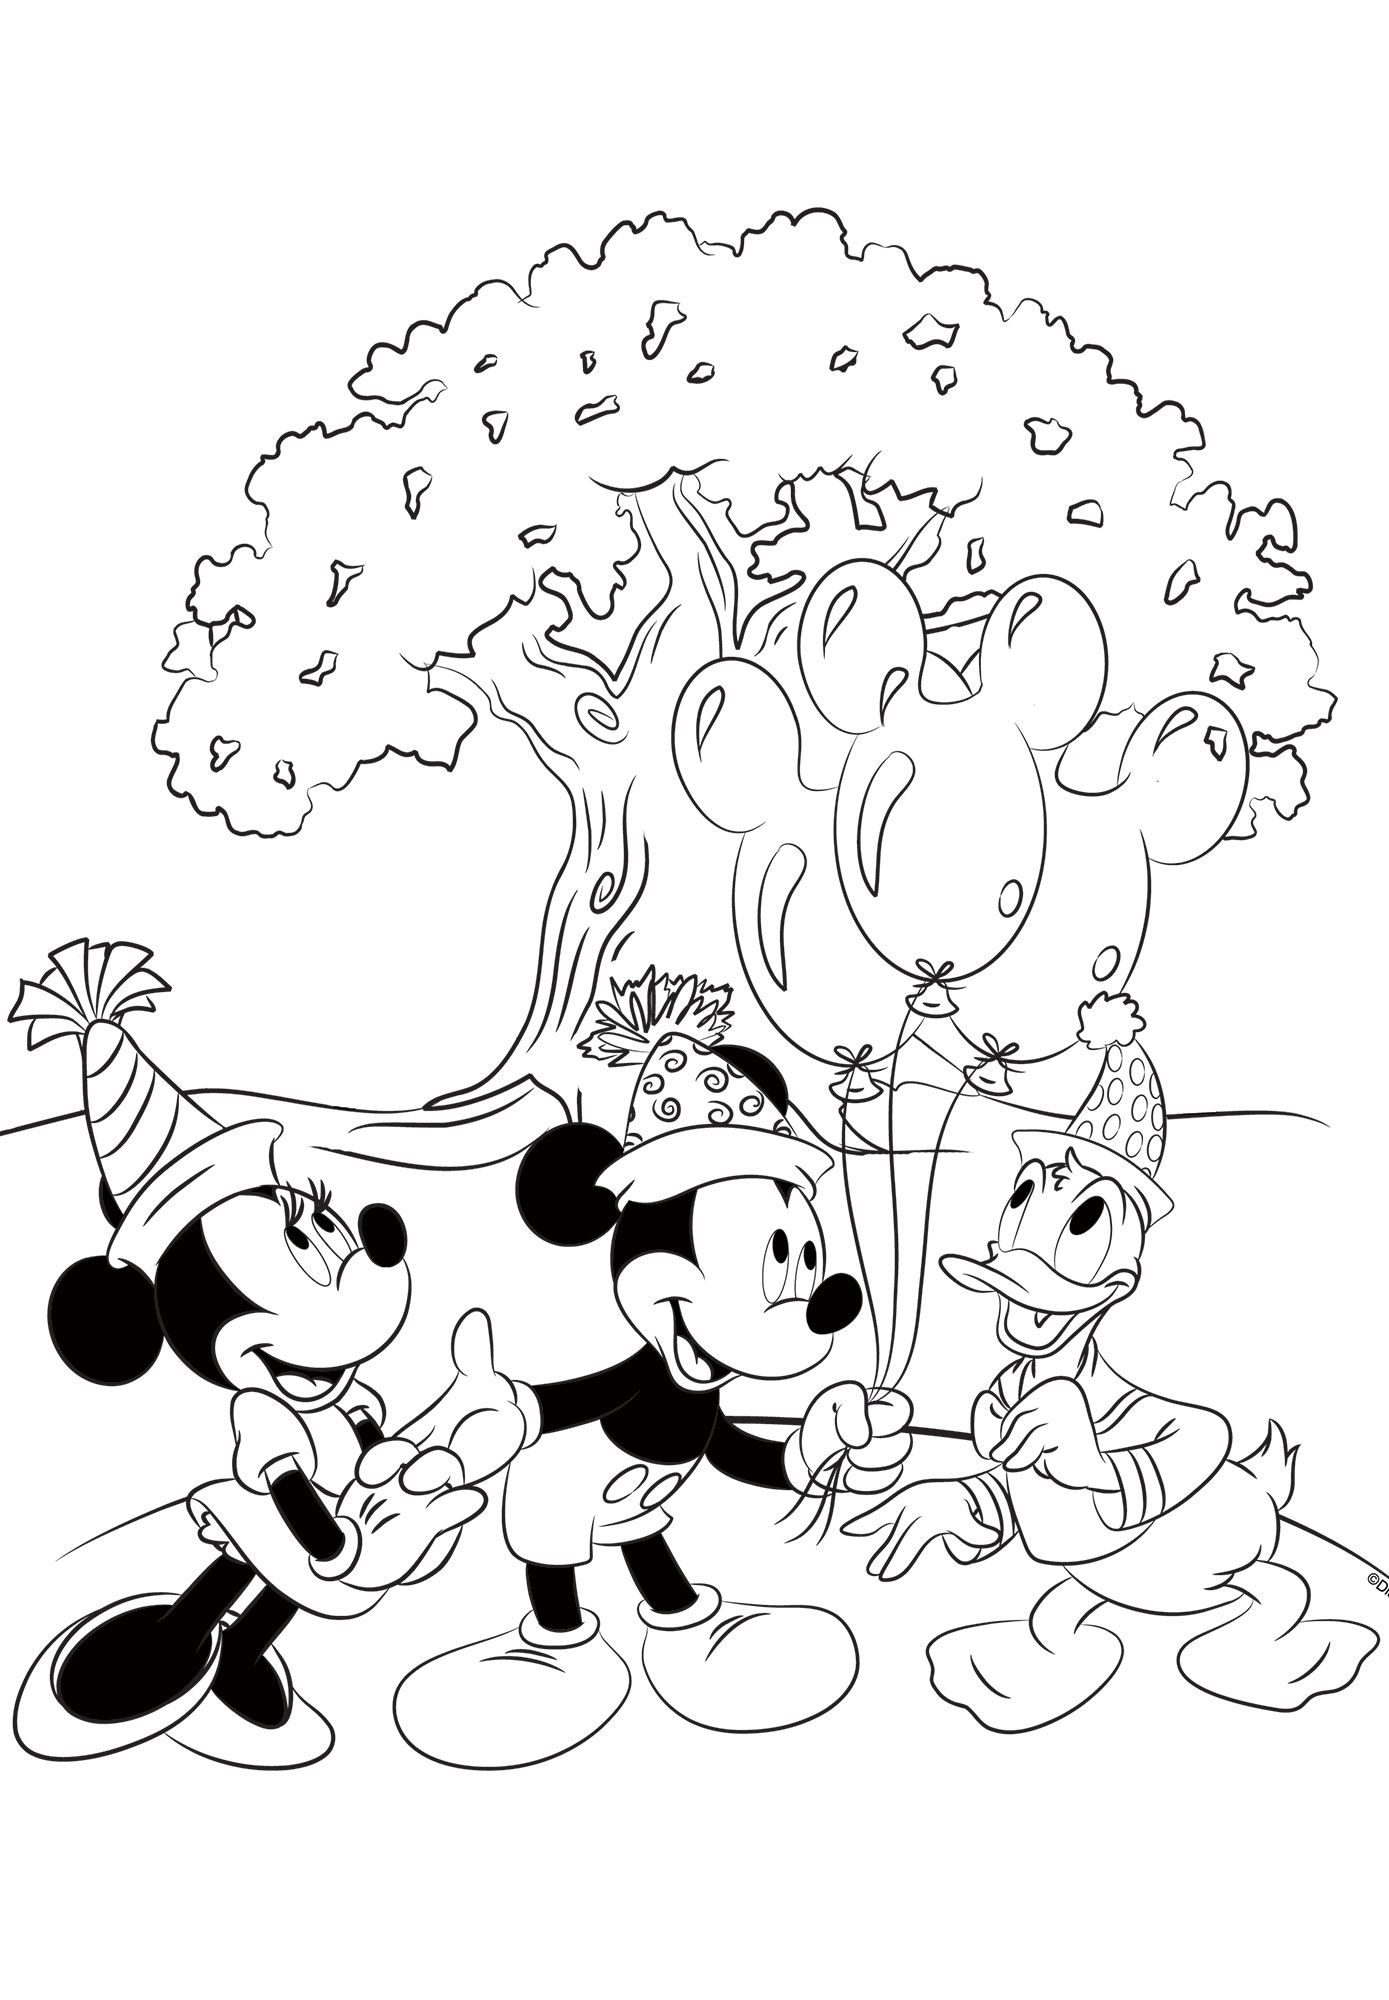 Free Mickey, Minnie and Donald coloring page! Disney